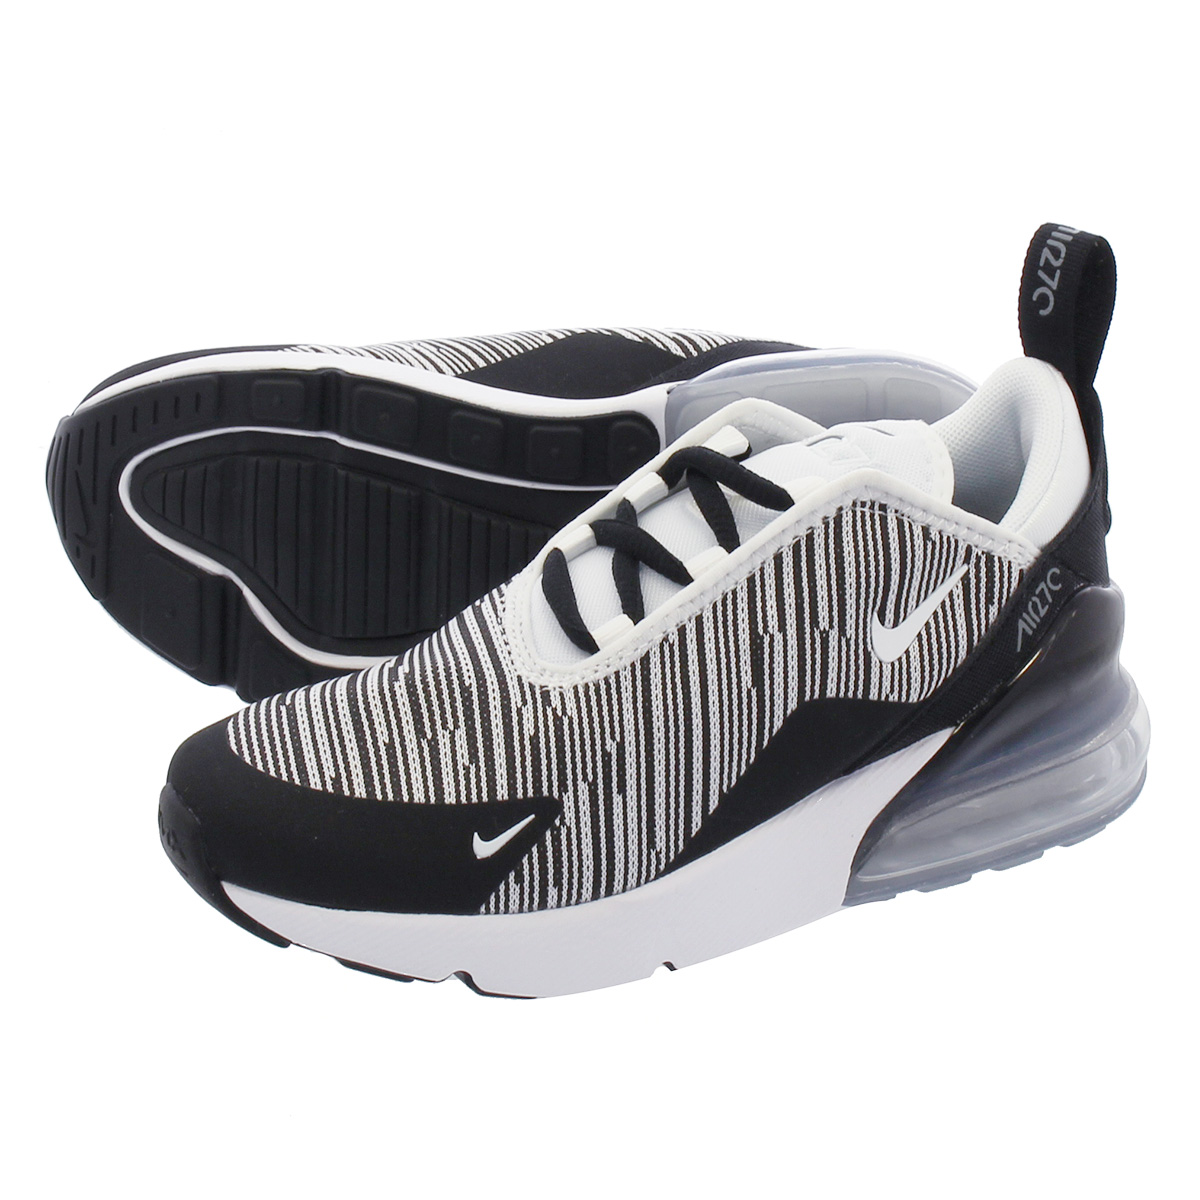 limited guantity buy good wholesale dealer NIKE AIR MAX 270 PS Kie Ney AMAX 270 PS BLACK/GREY/SILVER/WHITE ao2372-007